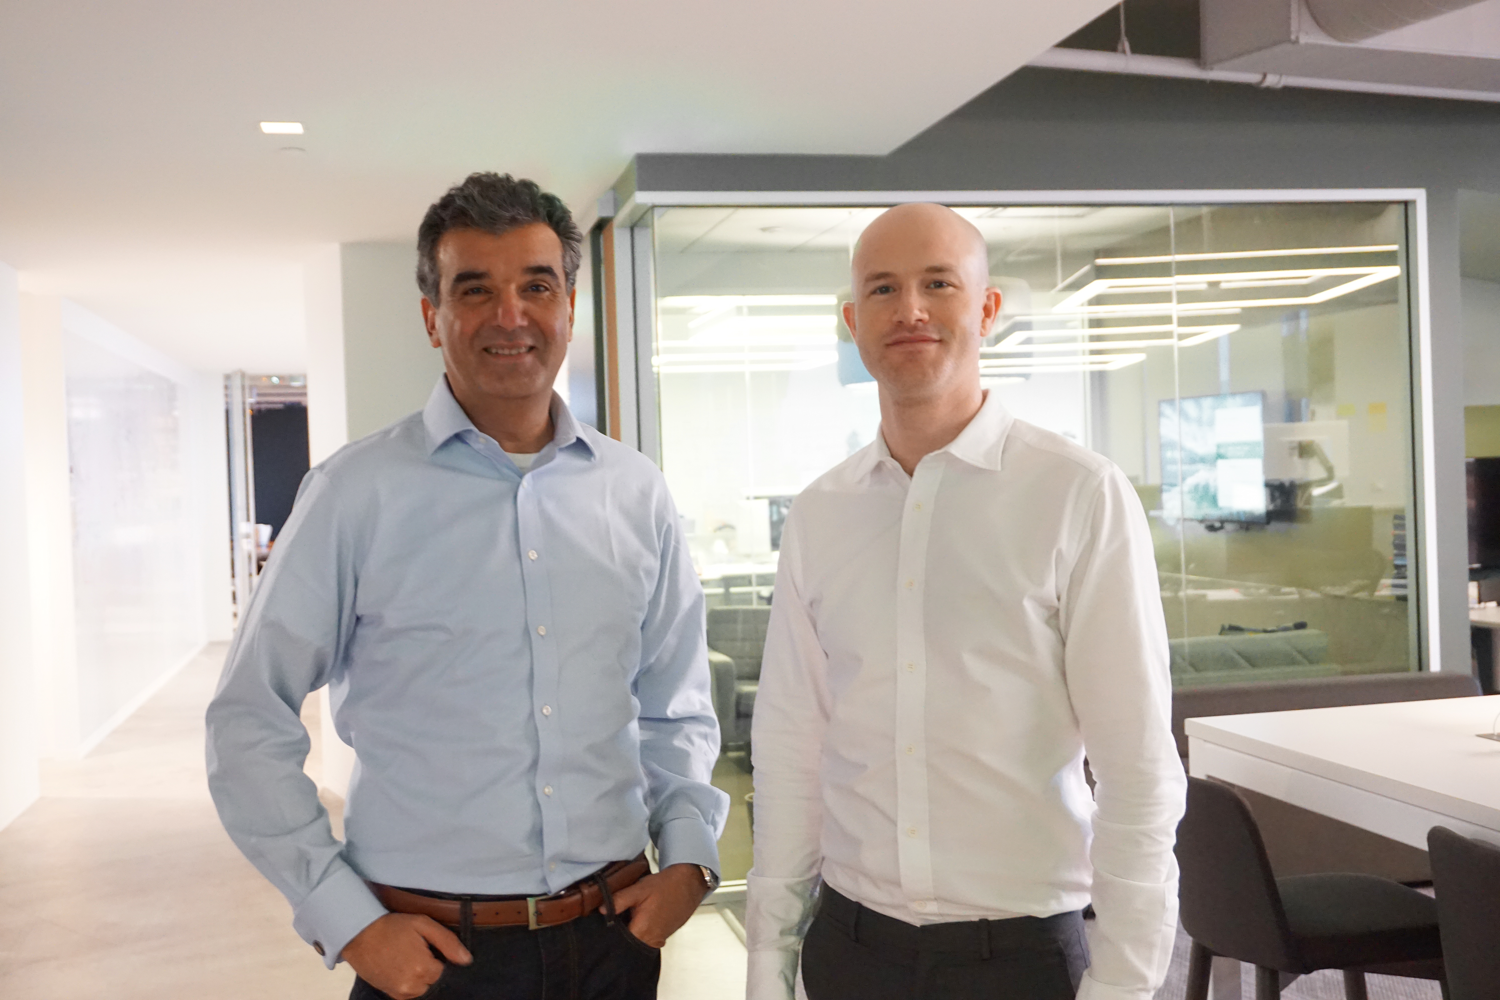 Coinbase CEO and founder Brian Armstrong (right) stands beside new-hire Asiff Hirji (left), a former top executive at TD Ameritrade and HP.